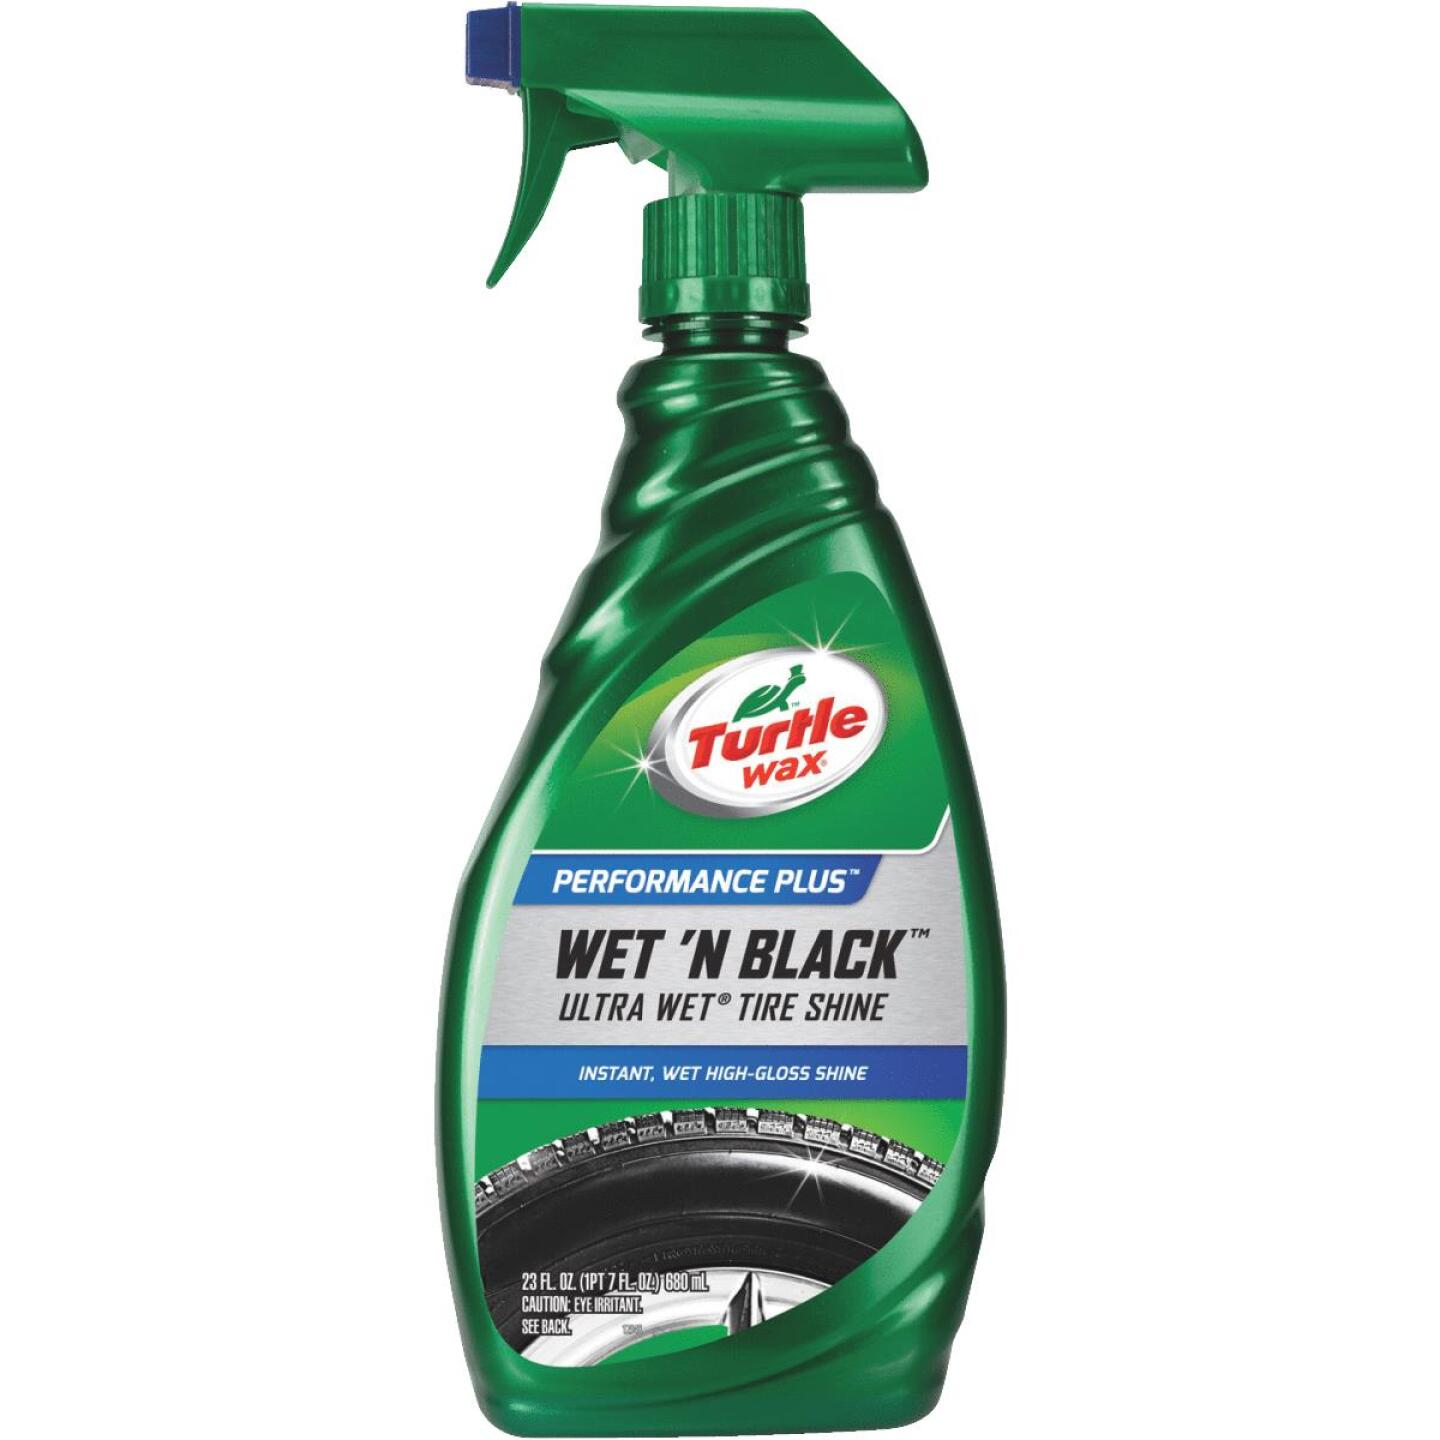 Turtle Wax Wet 'N Black 23 Oz. Trigger Spray Tire Shine Image 1